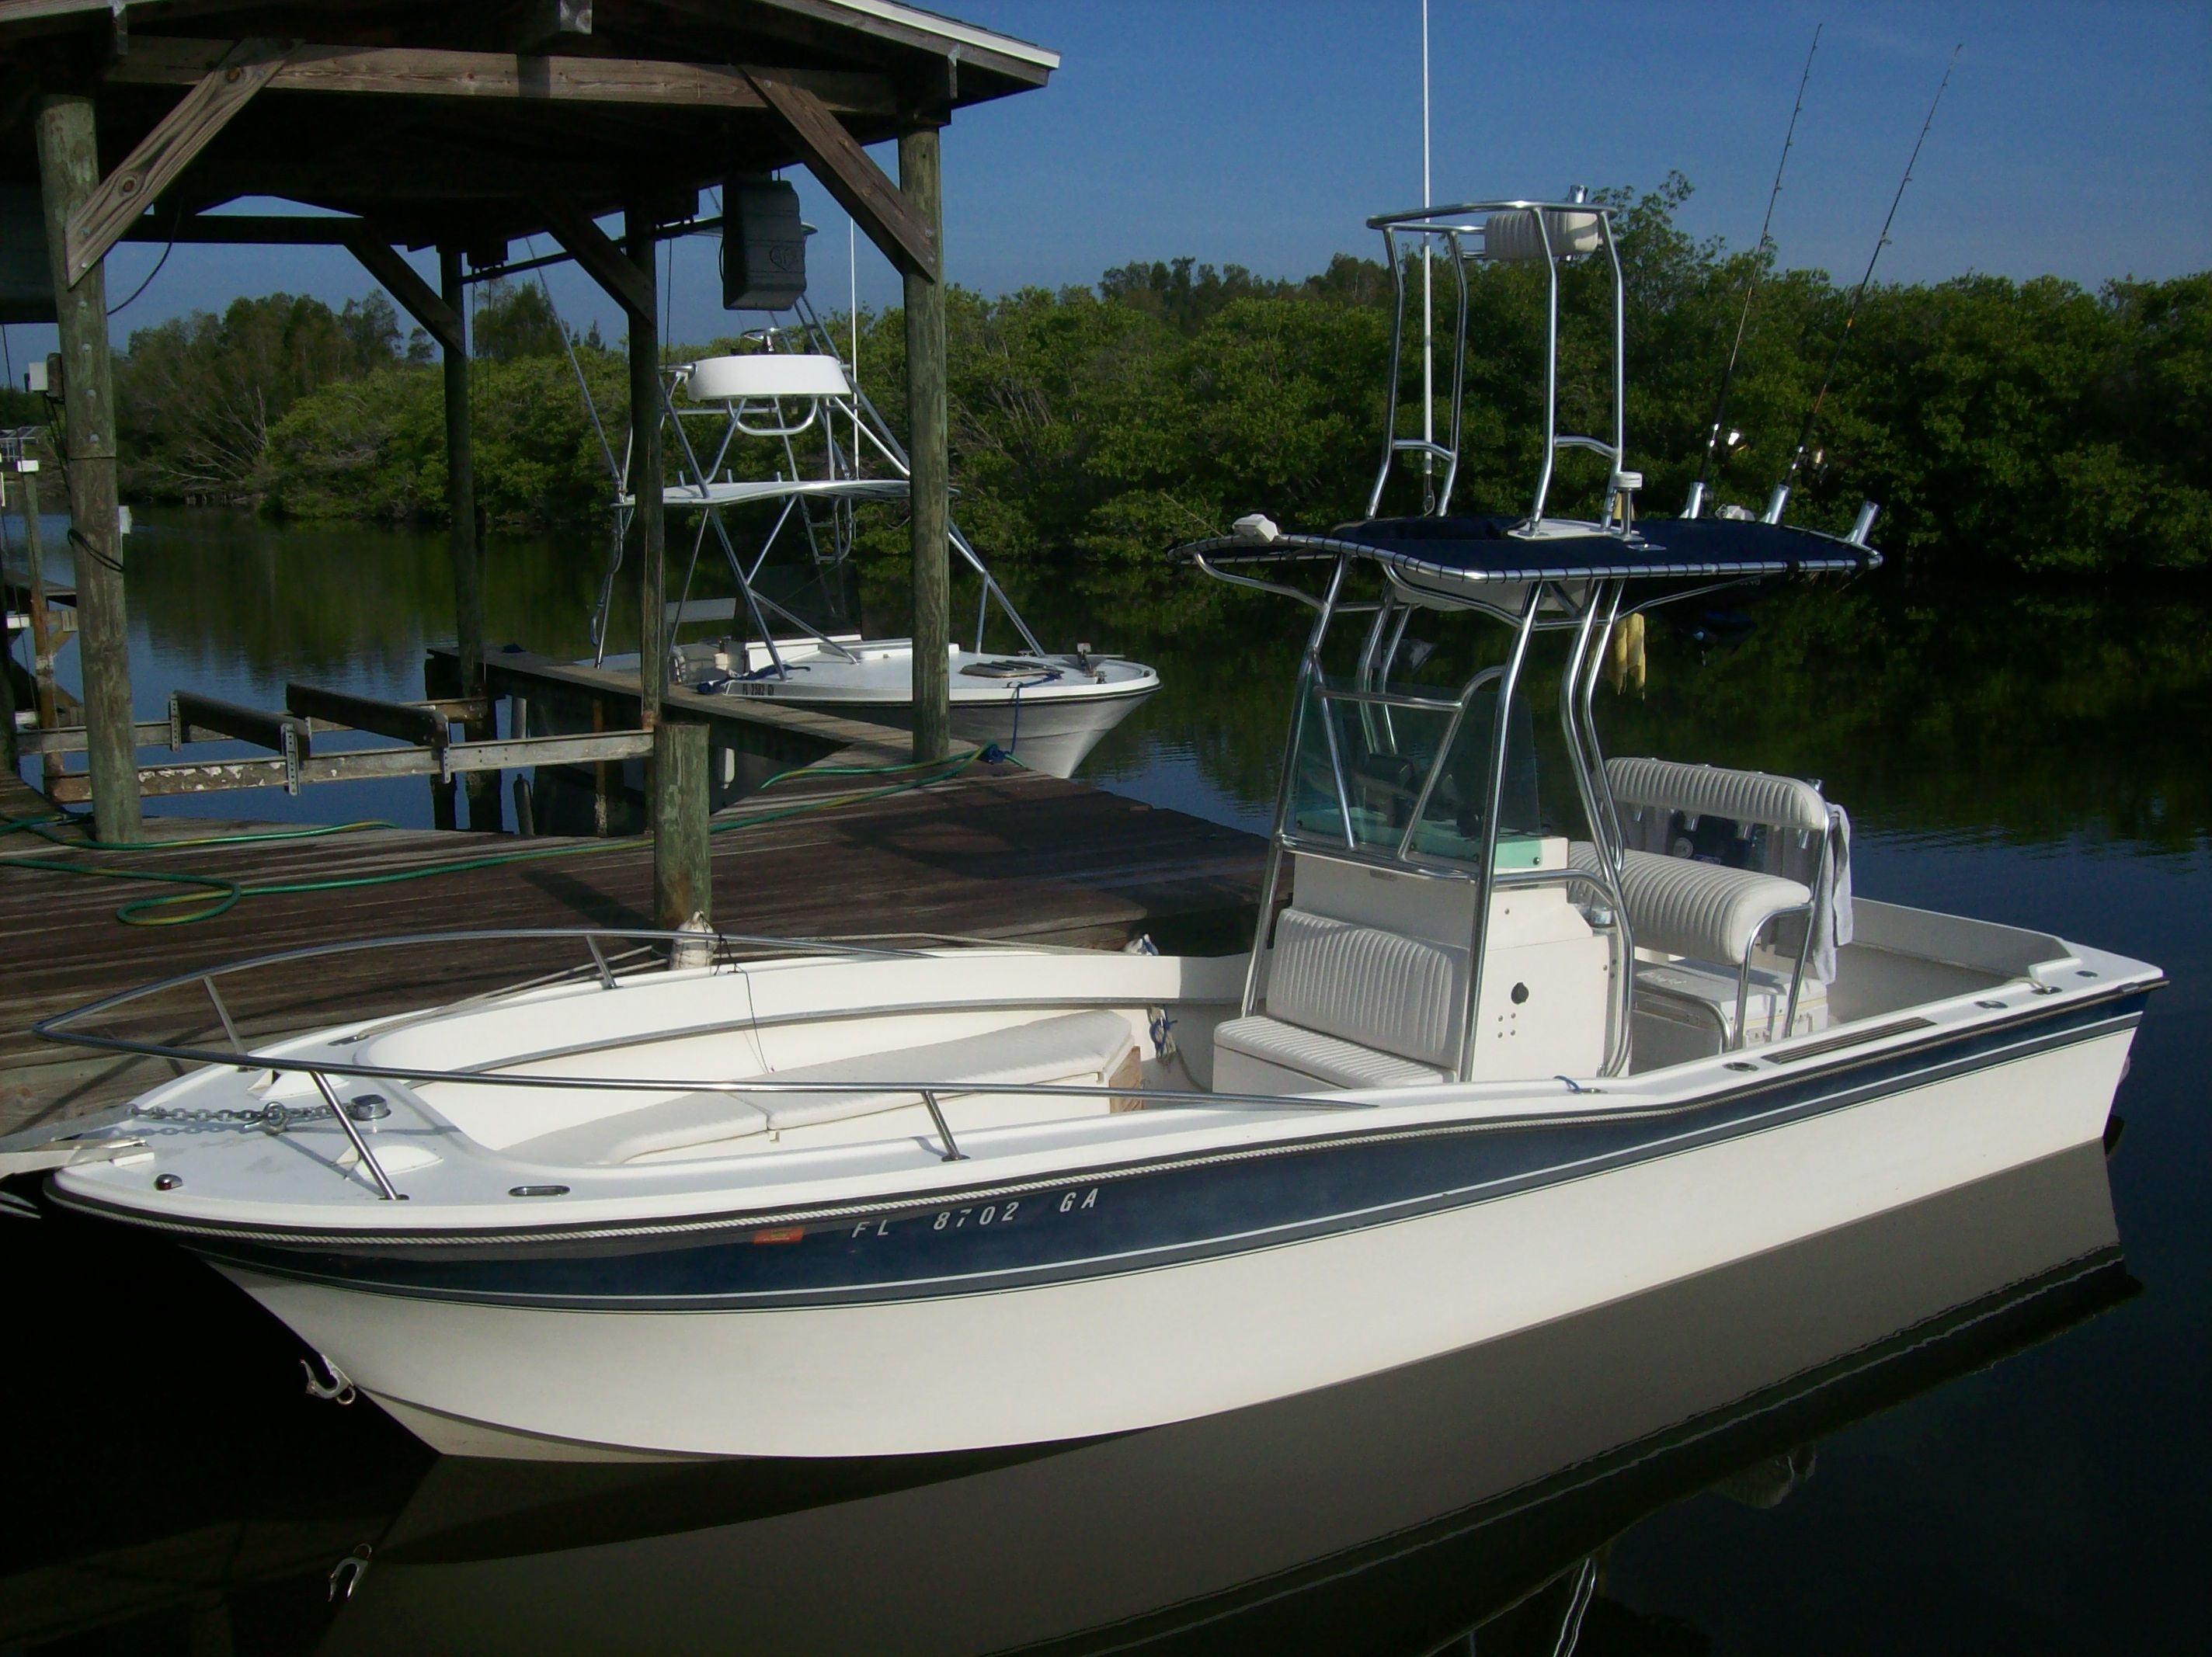 1988 23 Fish Nautique Sold Thanks Tht The Hull Truth Boating And Fishing Forum Center Console Fishing Boats Boat Offshore Fishing Boats